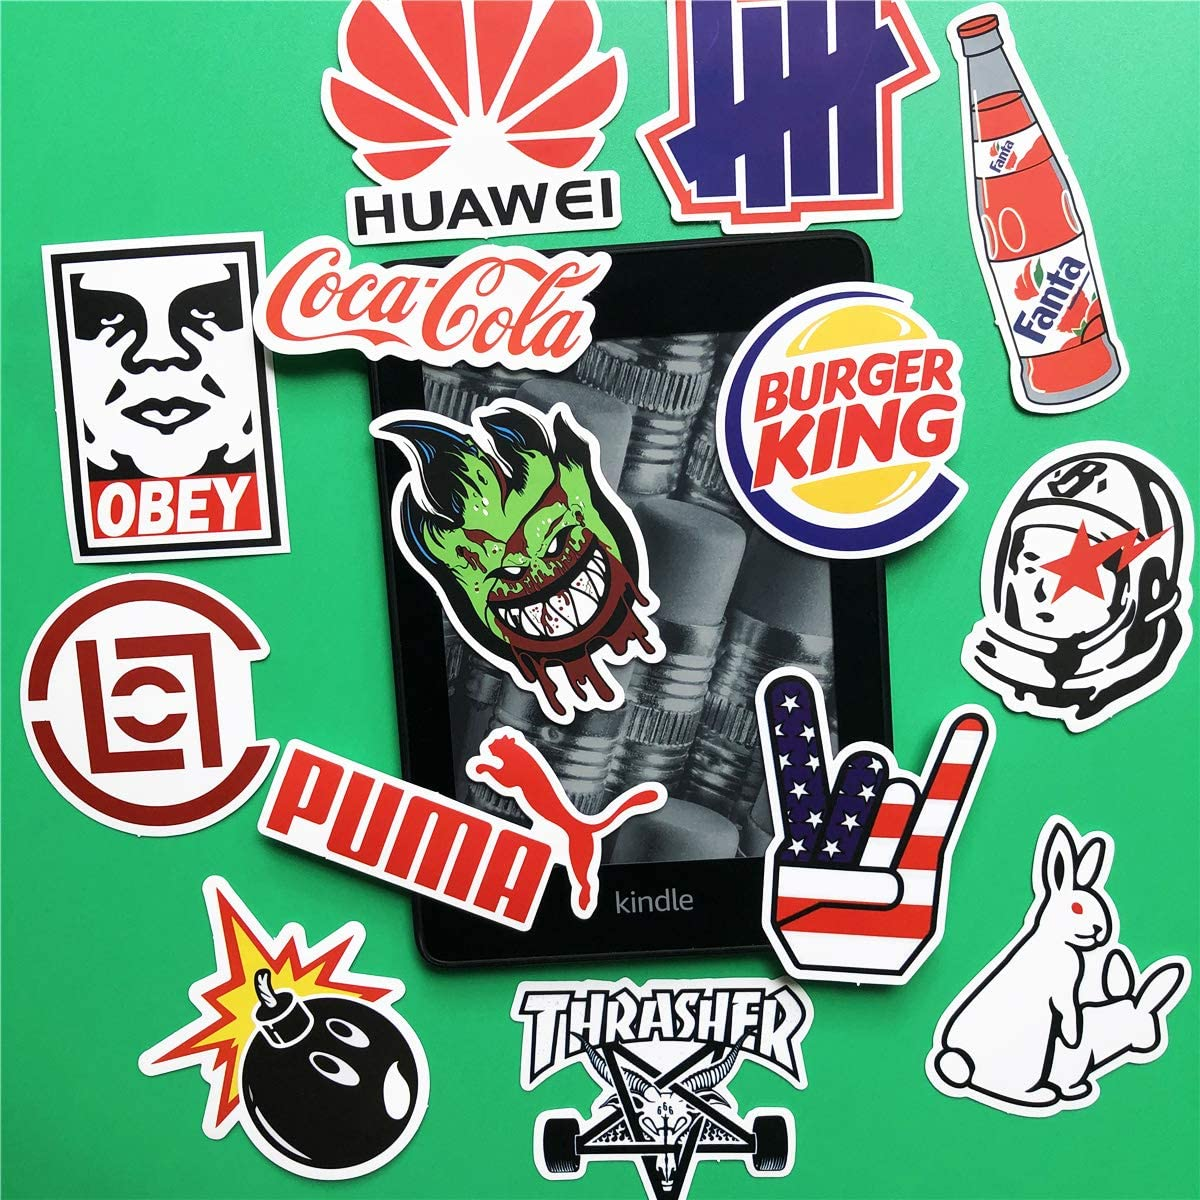 JDM TV Stickers Greys Anatomy Stickers 50Pcs Waterproof Variety Vinyl Car Sticker Motorcycle Bicycle Luggage Decal Graffiti Patches Skateboard Stickers for Laptop Stickers Greys Anatomy